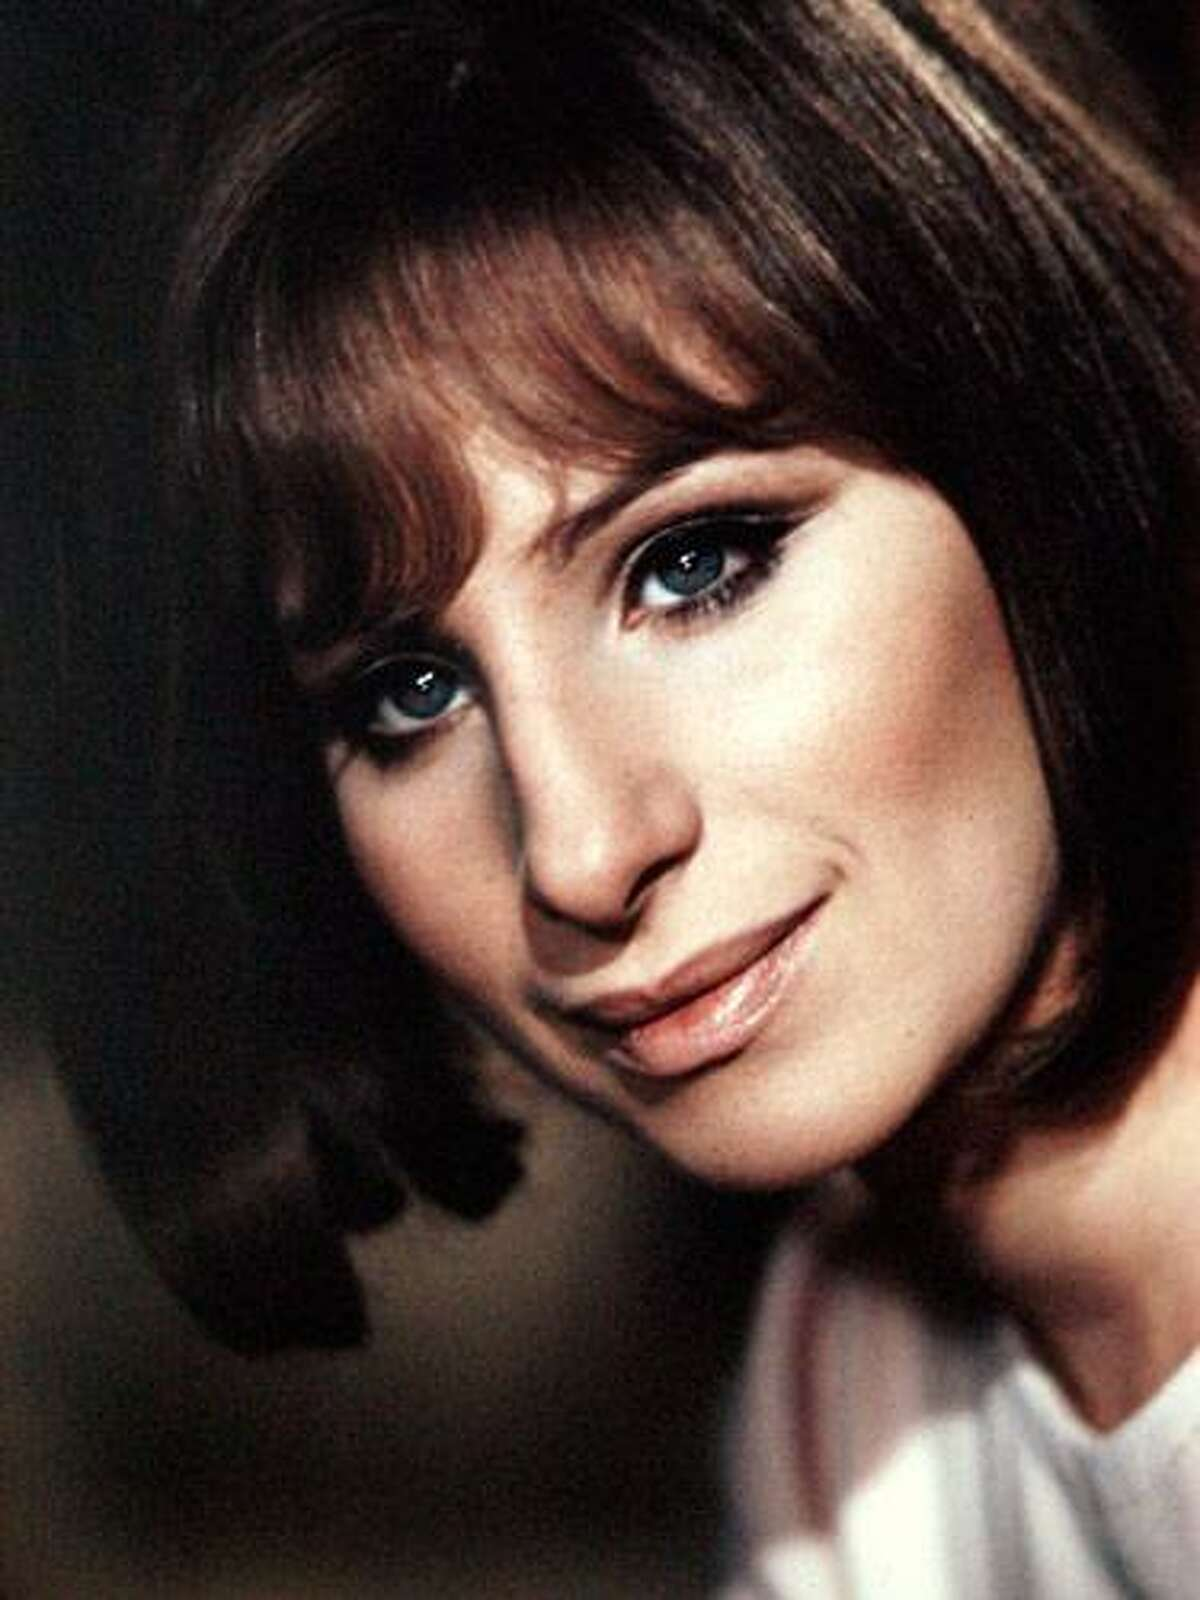 It would be silly to fault a young Barbra Streisand for acting like Barbra Streisand.